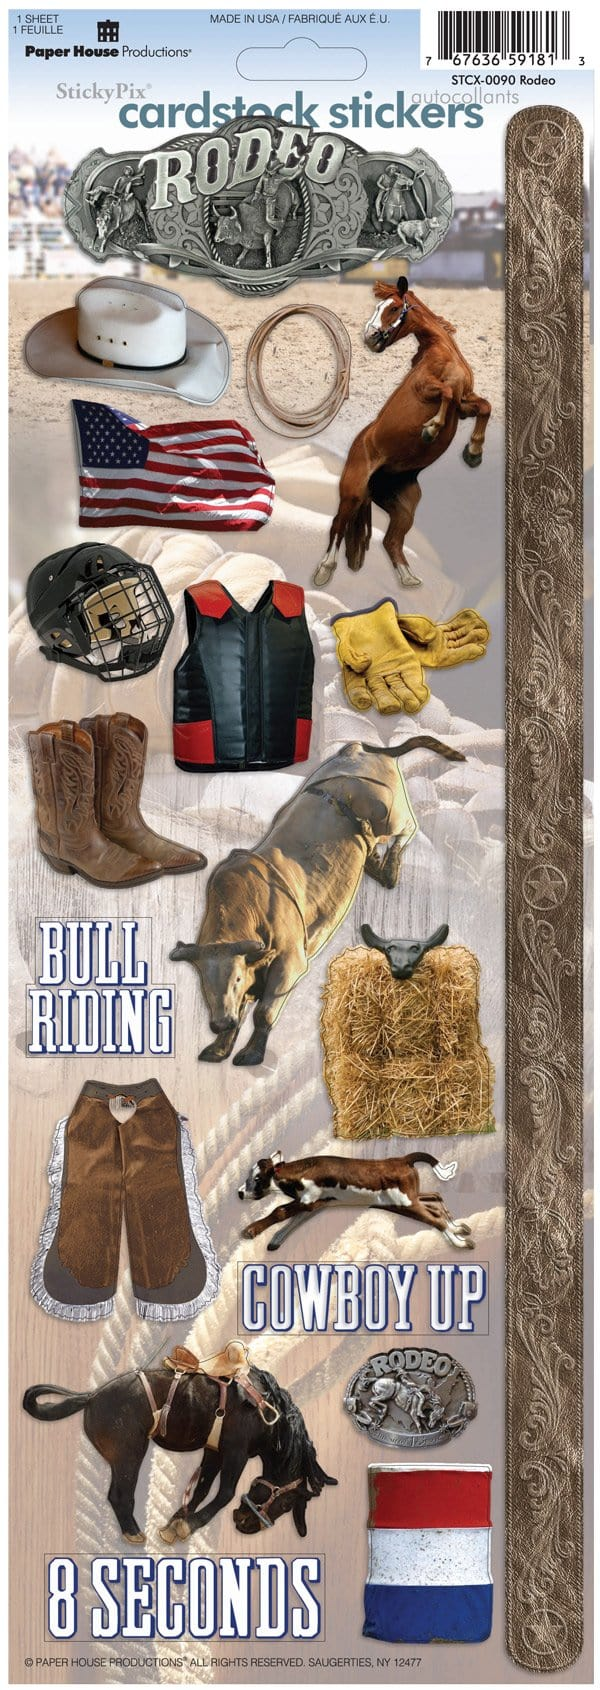 Rodeo Cardstock Stickers